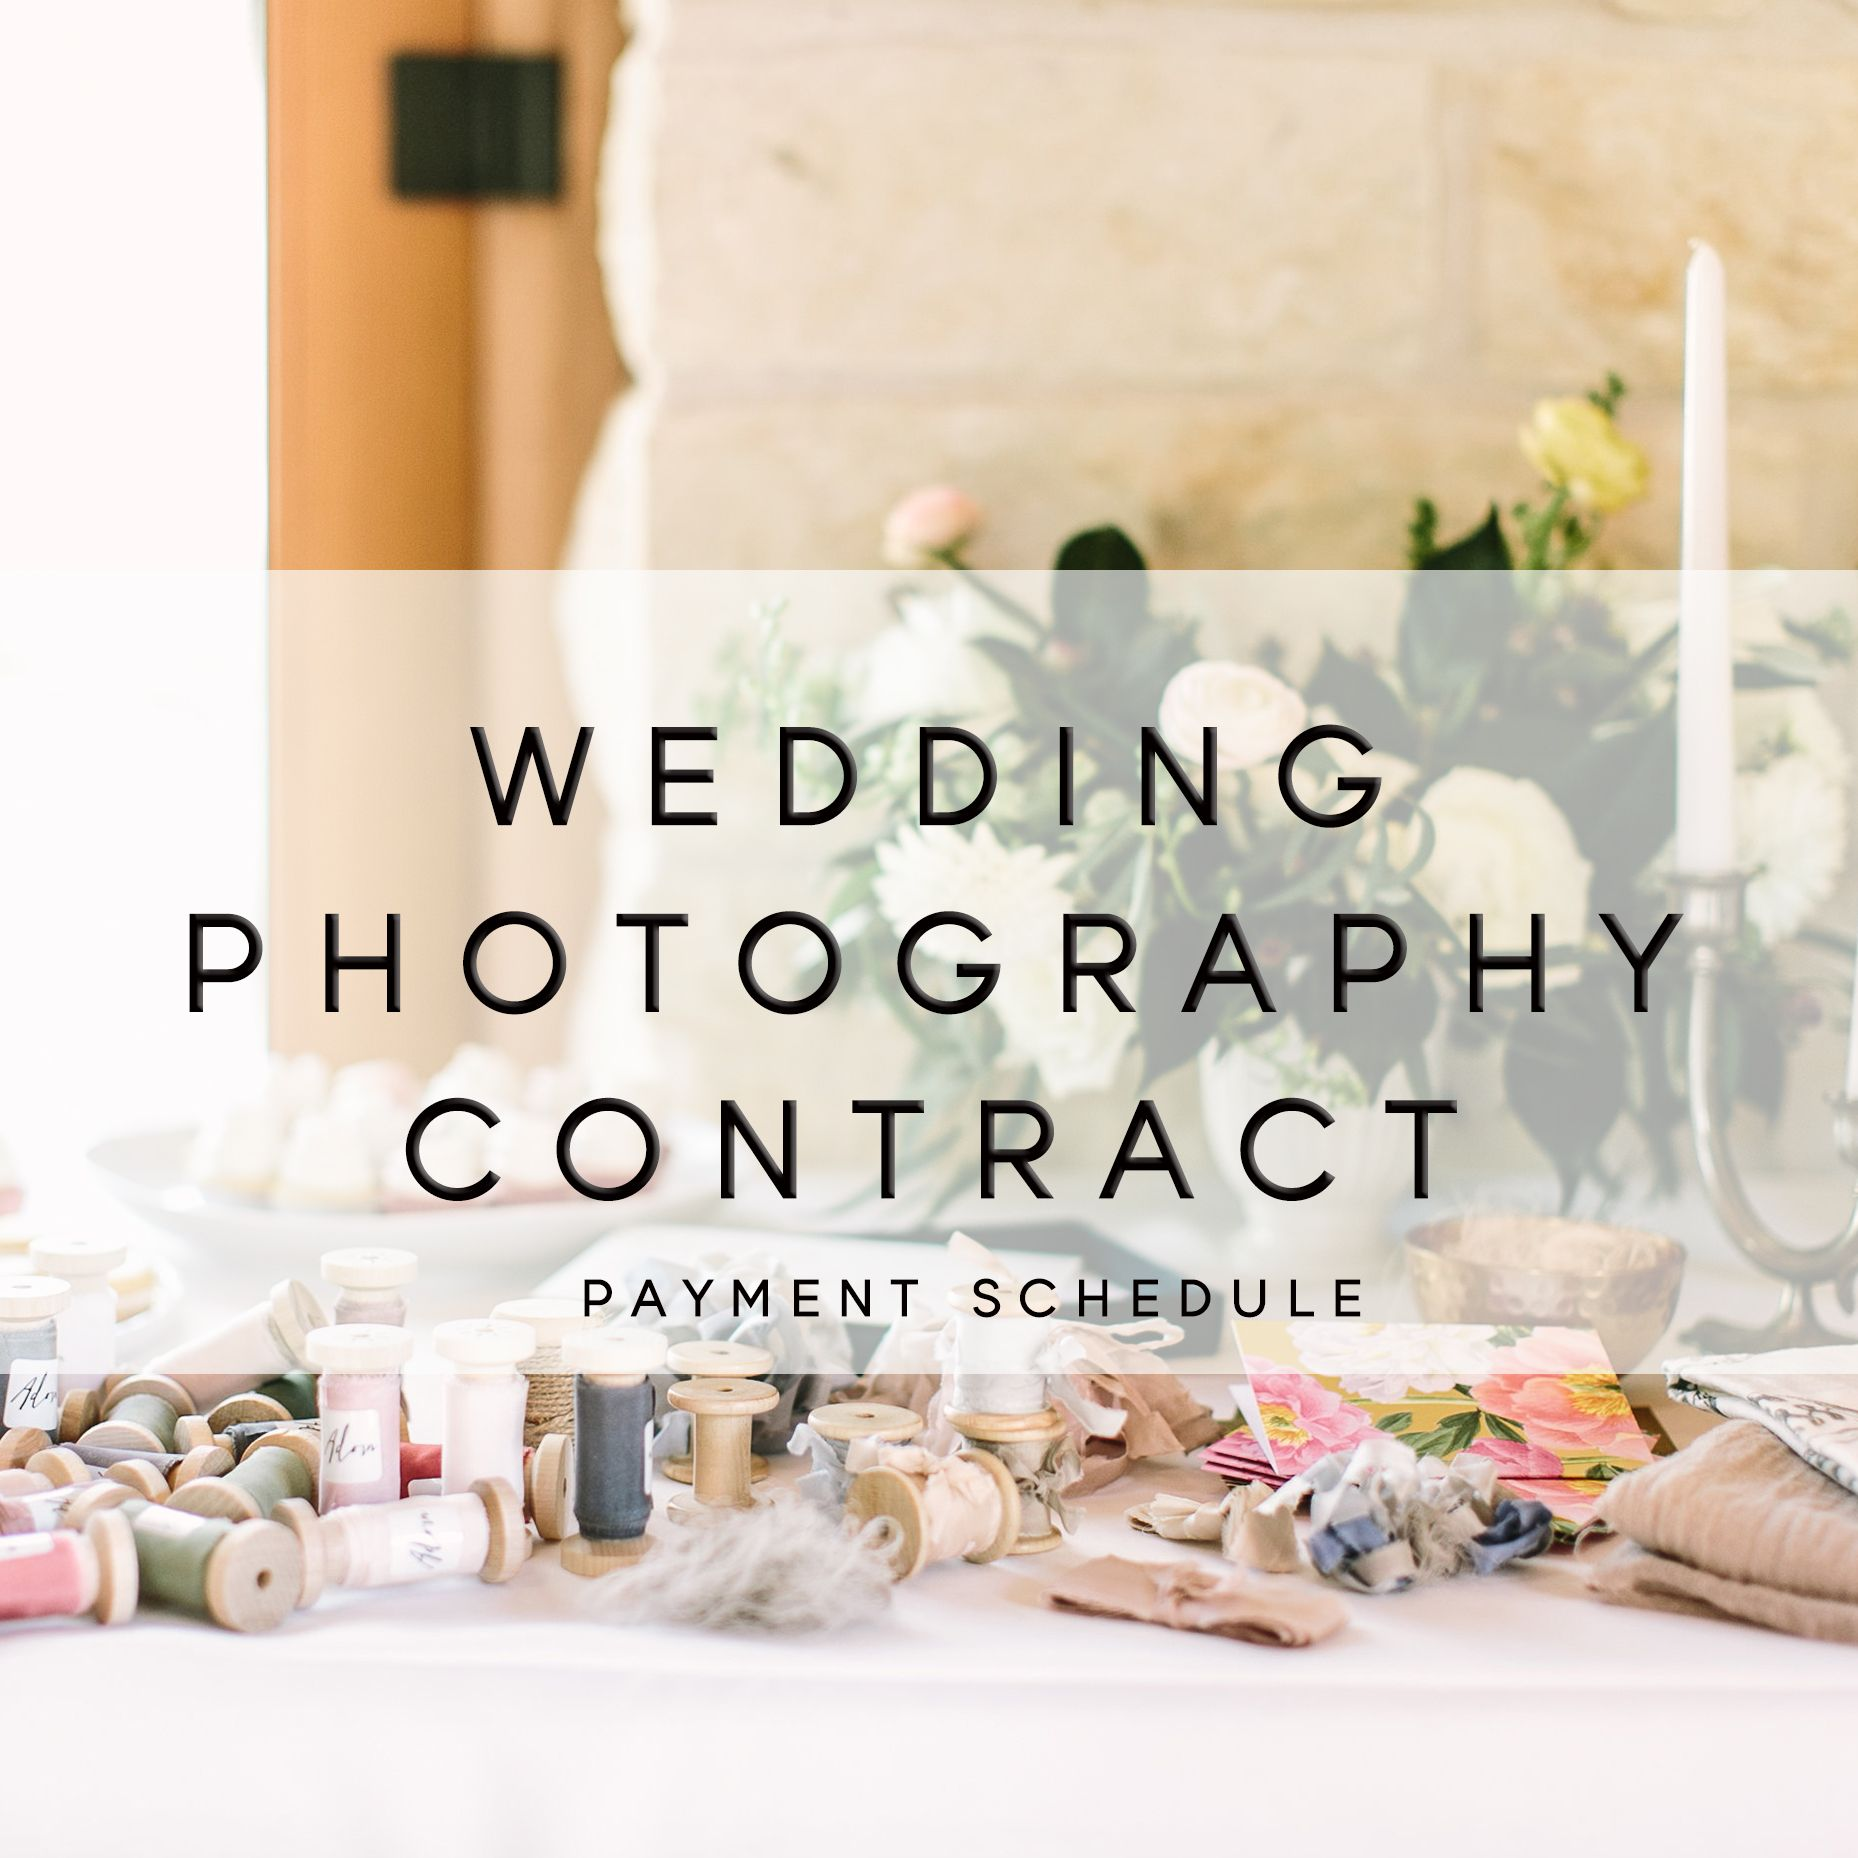 Wedding Photography Contract Payment Plan  Legal Tips For